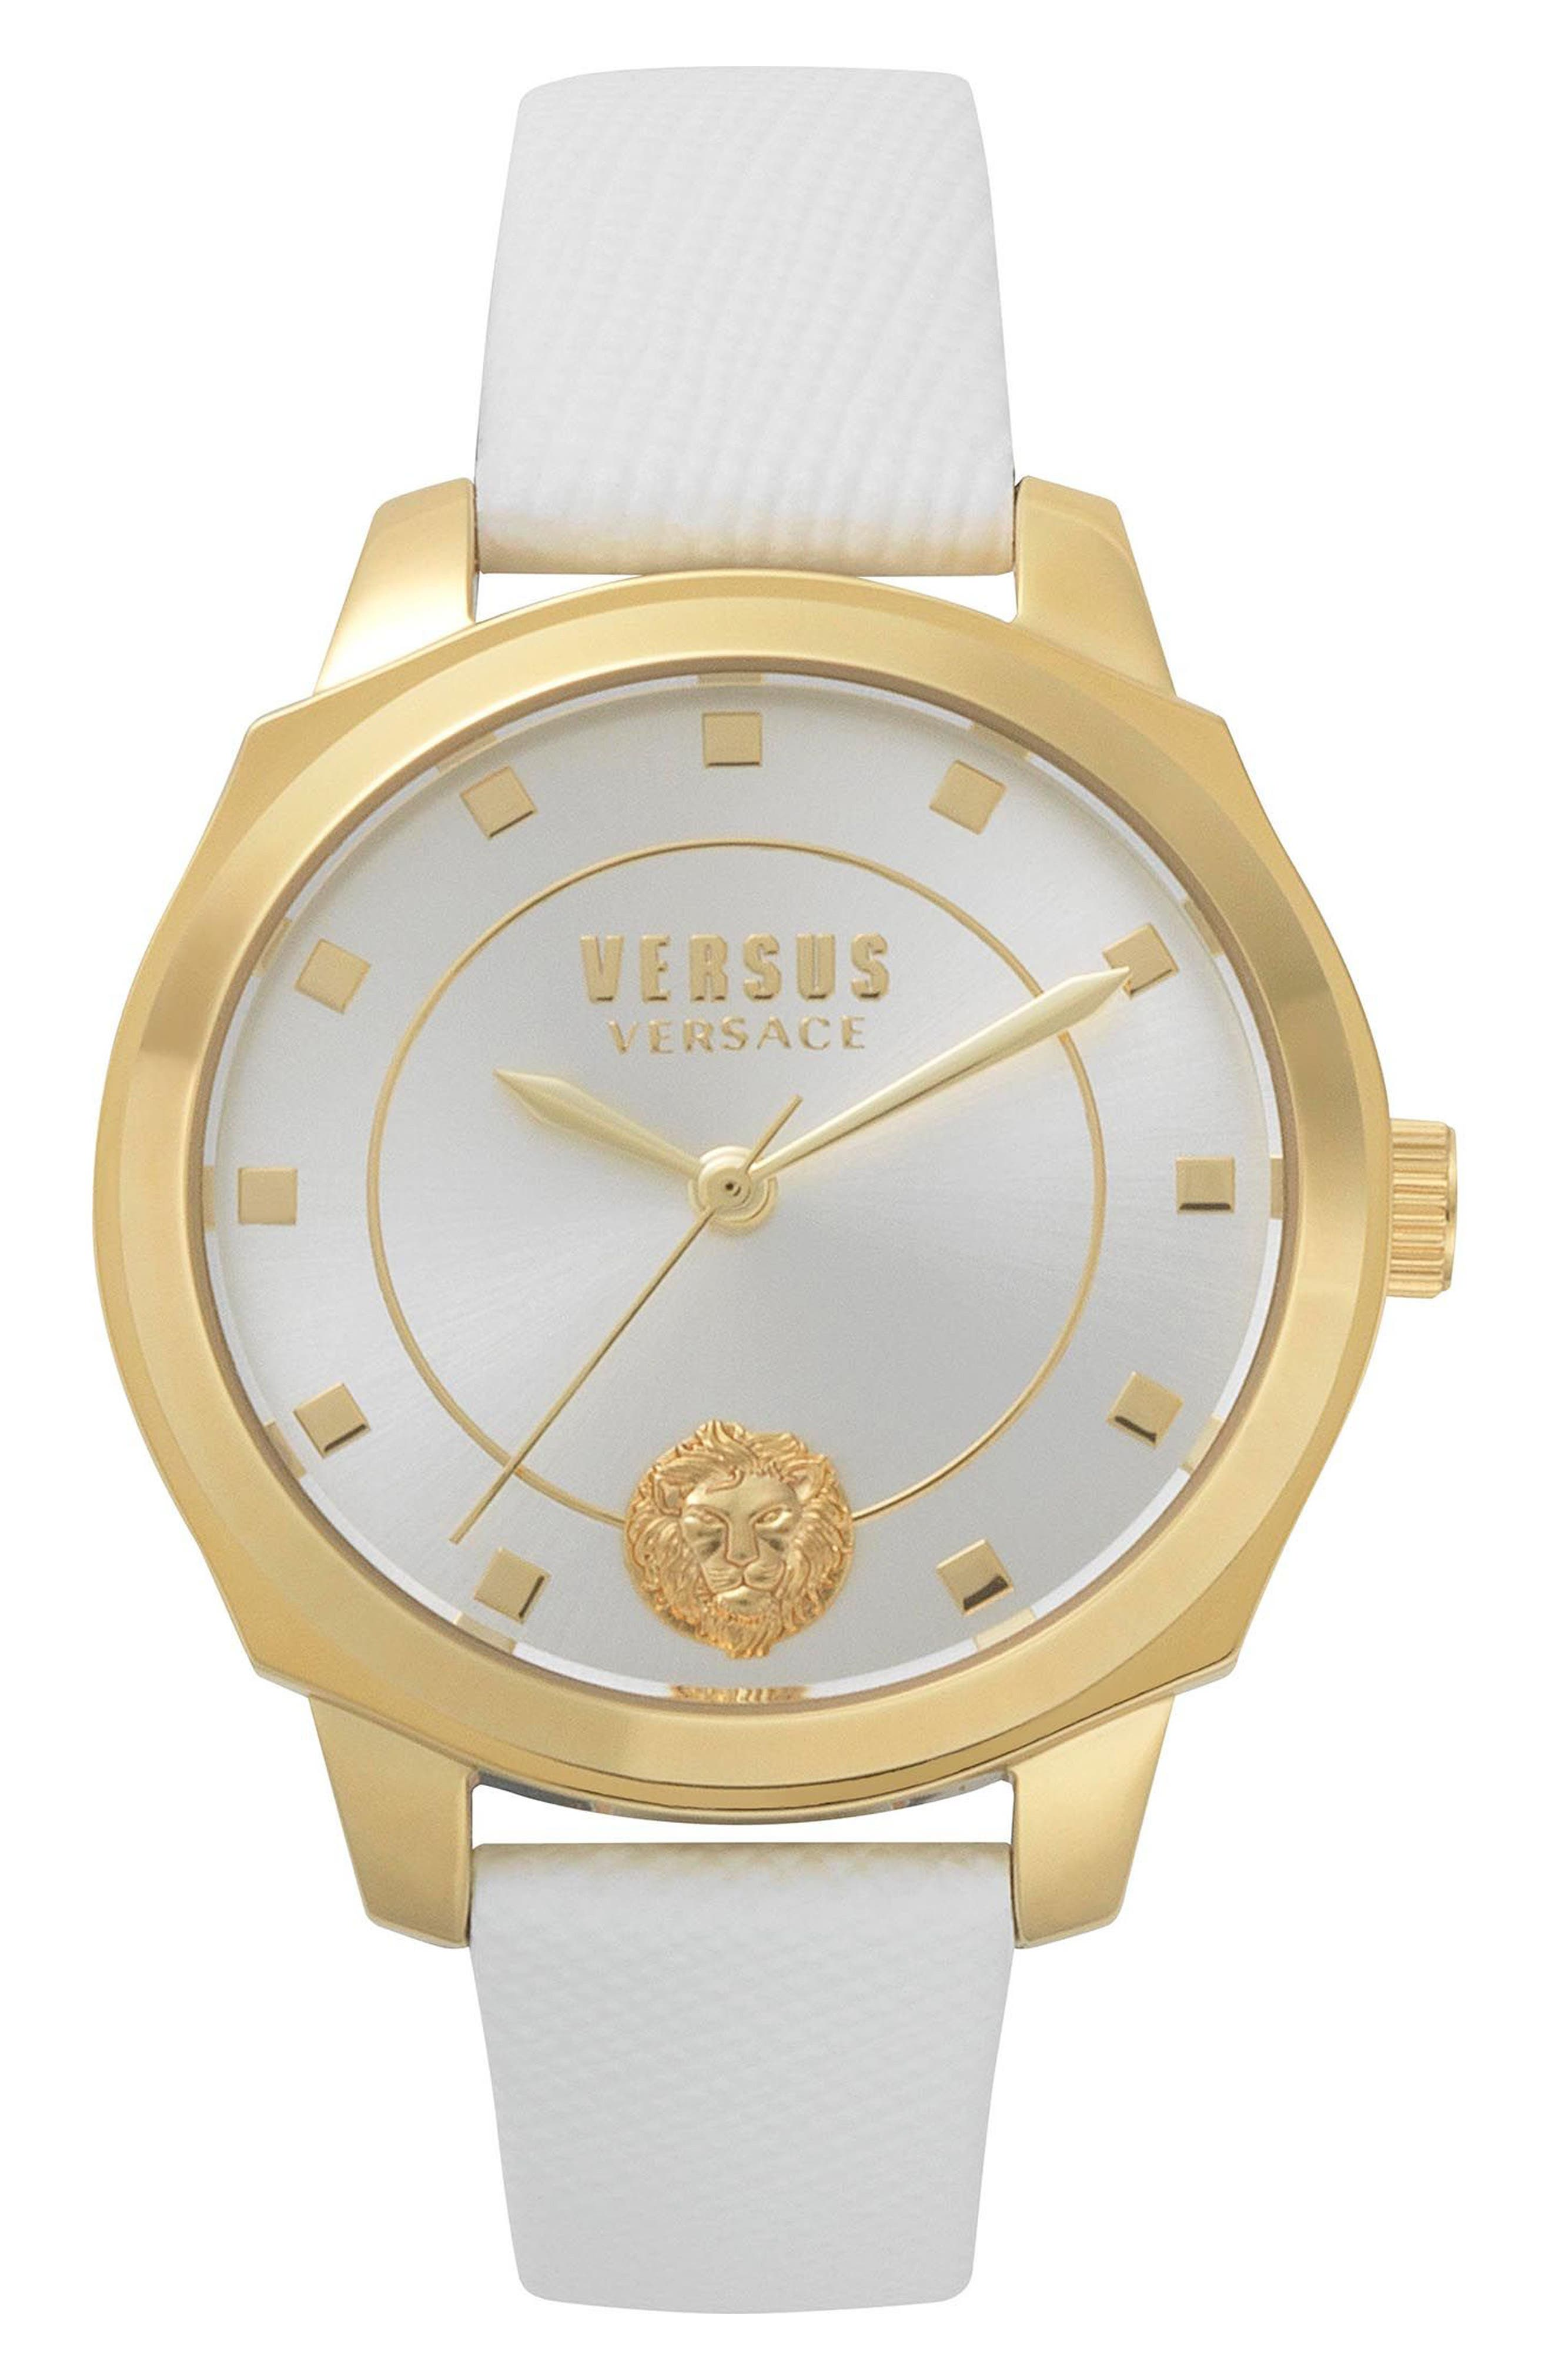 VERSUS by Versace Chelsea Leather Strap Watch, 34mm,                             Main thumbnail 1, color,                             White/ Silver/ Gold